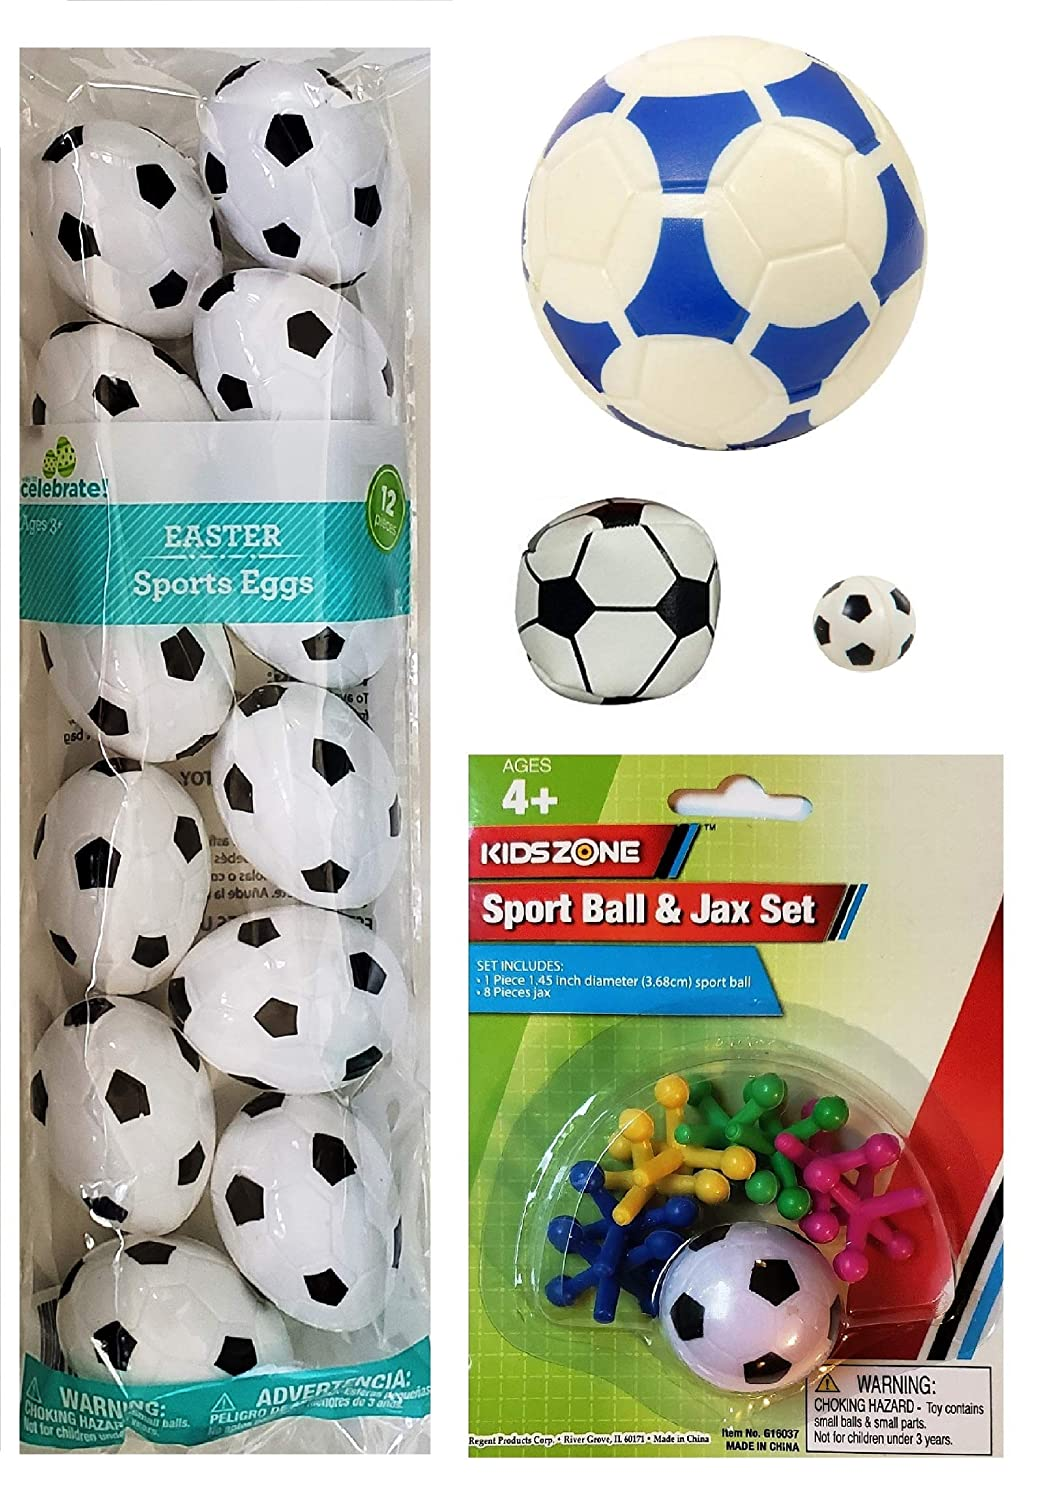 and Mini Bounce Ball Hacky Sack Soccer Easter Basket Filler 5 Piece Bundle for Kids Ages 4+ |12 Plastic Easter Eggs Classic Ball /& Jacks Game Foam Soccer Ball